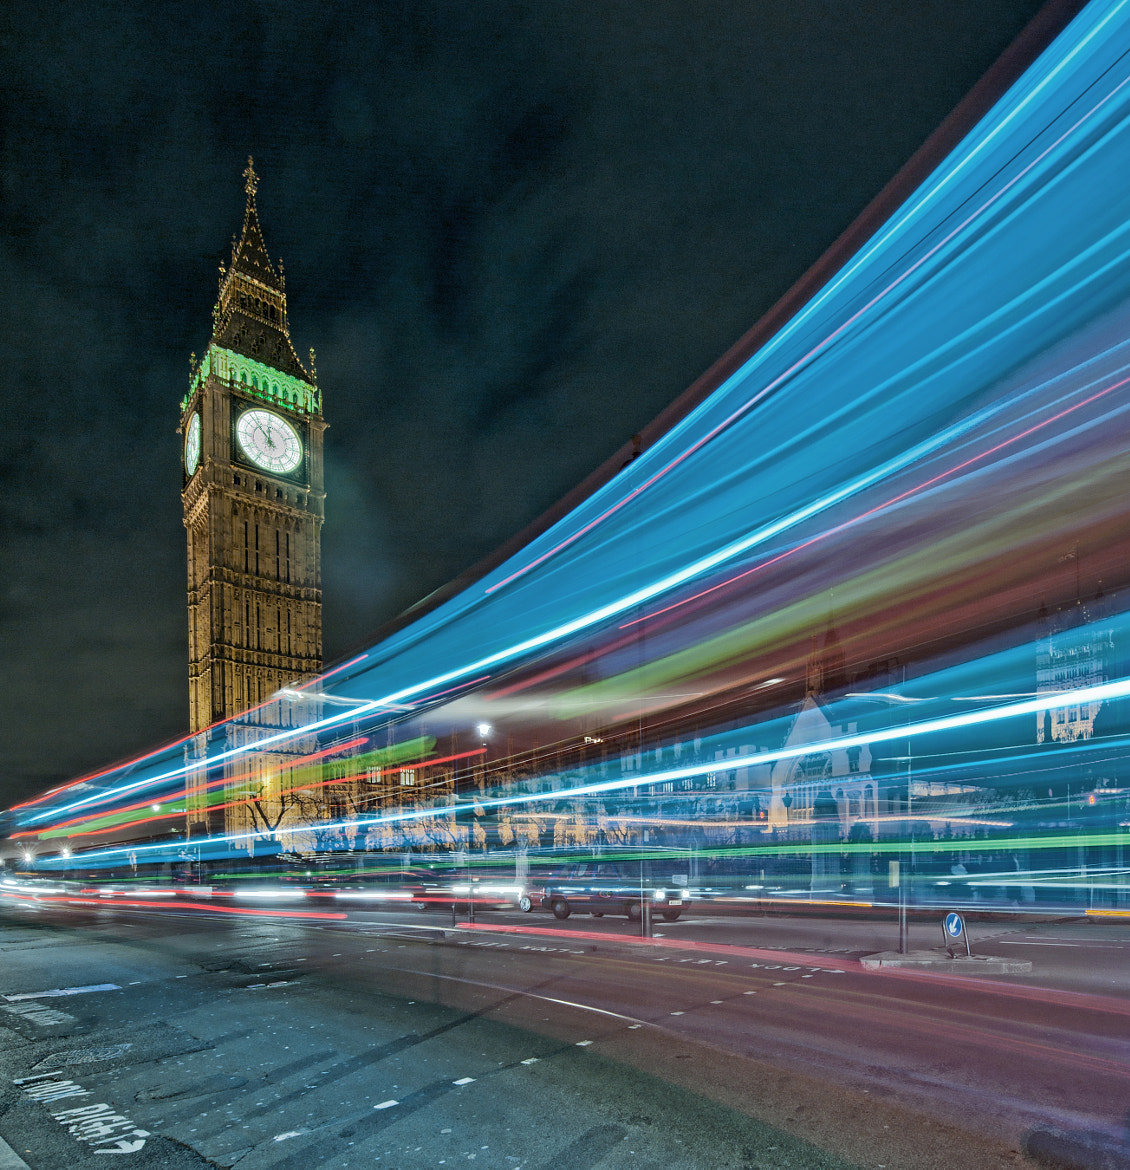 Photograph STOP THE BUS! by WilsonAxpe /  Scott Wilson on 500px